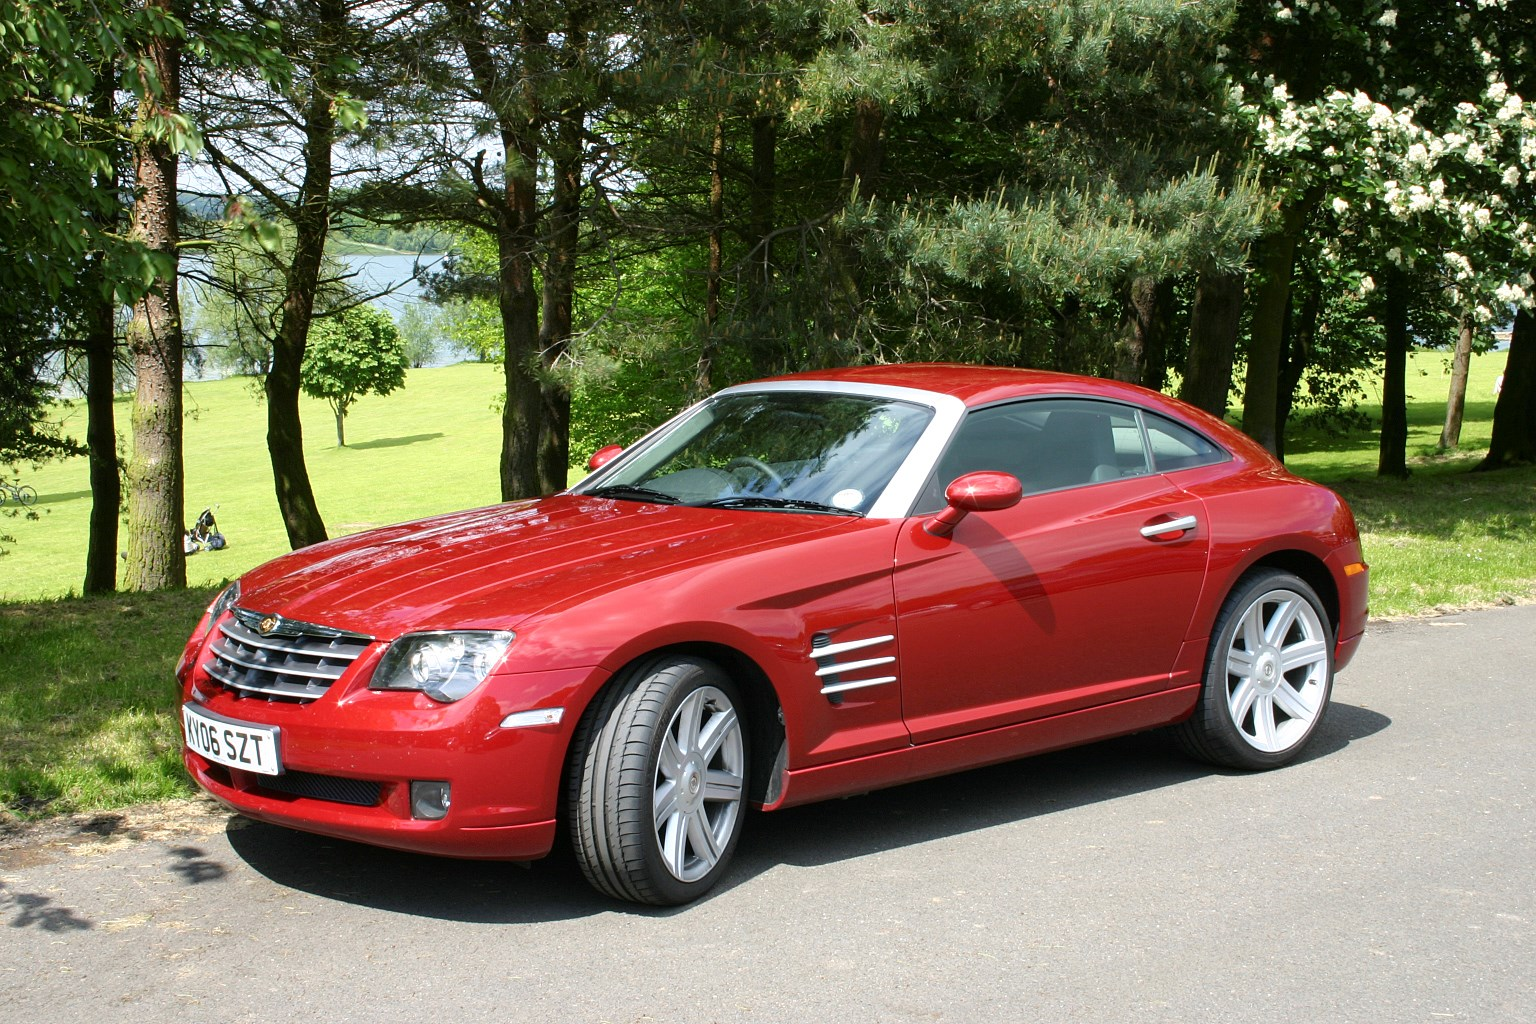 2008 chrysler crossfire prices specs reviews motor autos post. Cars Review. Best American Auto & Cars Review